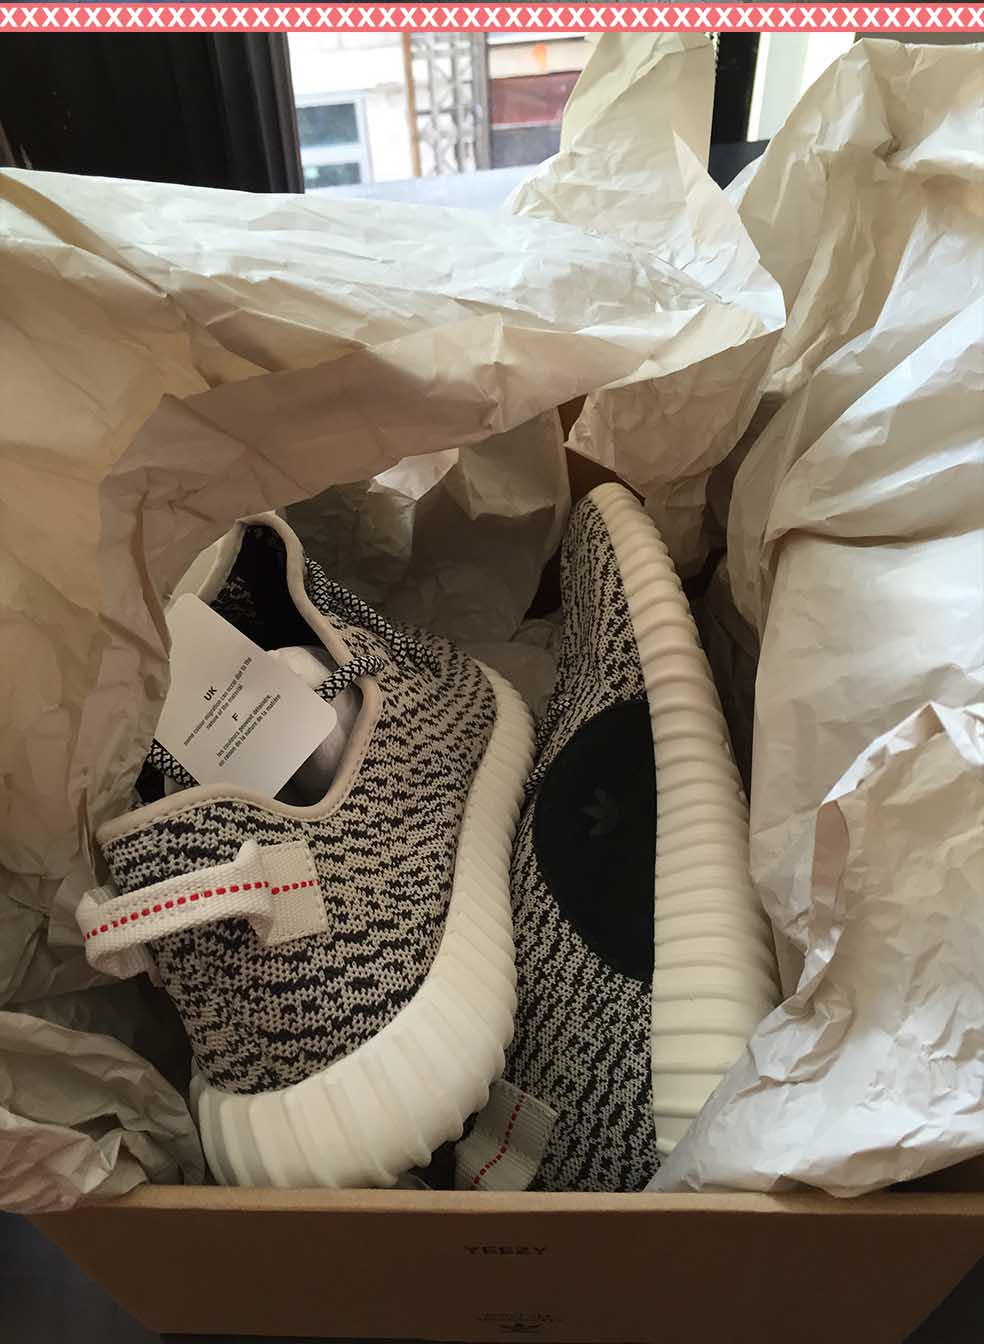 Stefan's Head - Yeezy 350 Boost 2